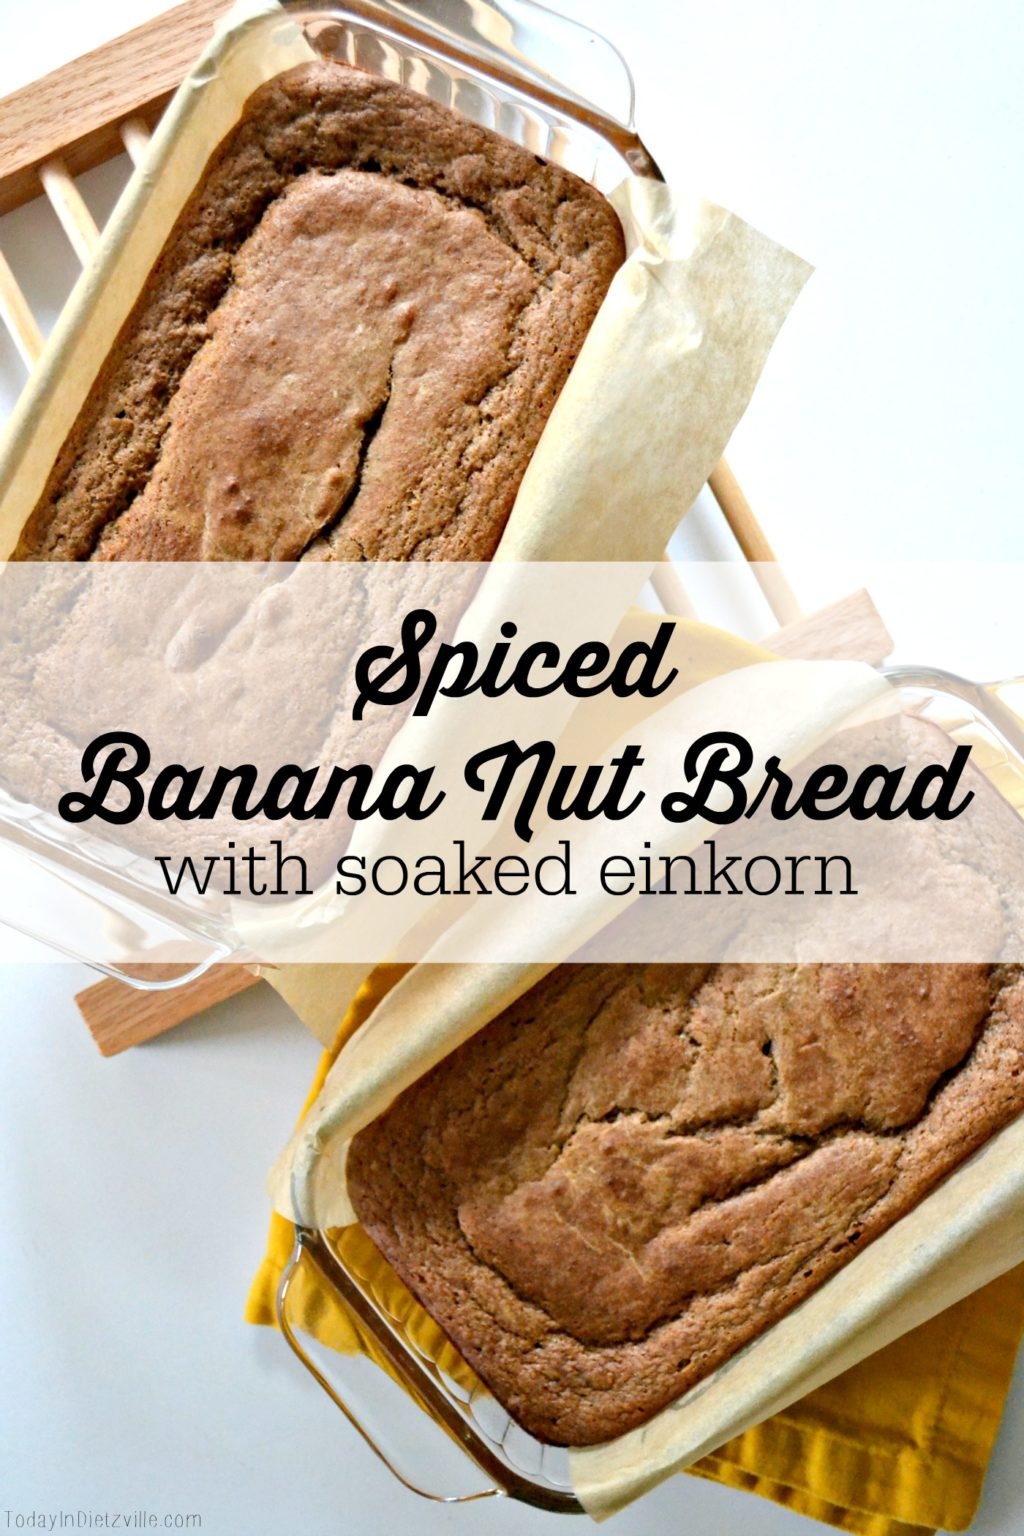 SpicedBananaNutBread All The Nourishing Things